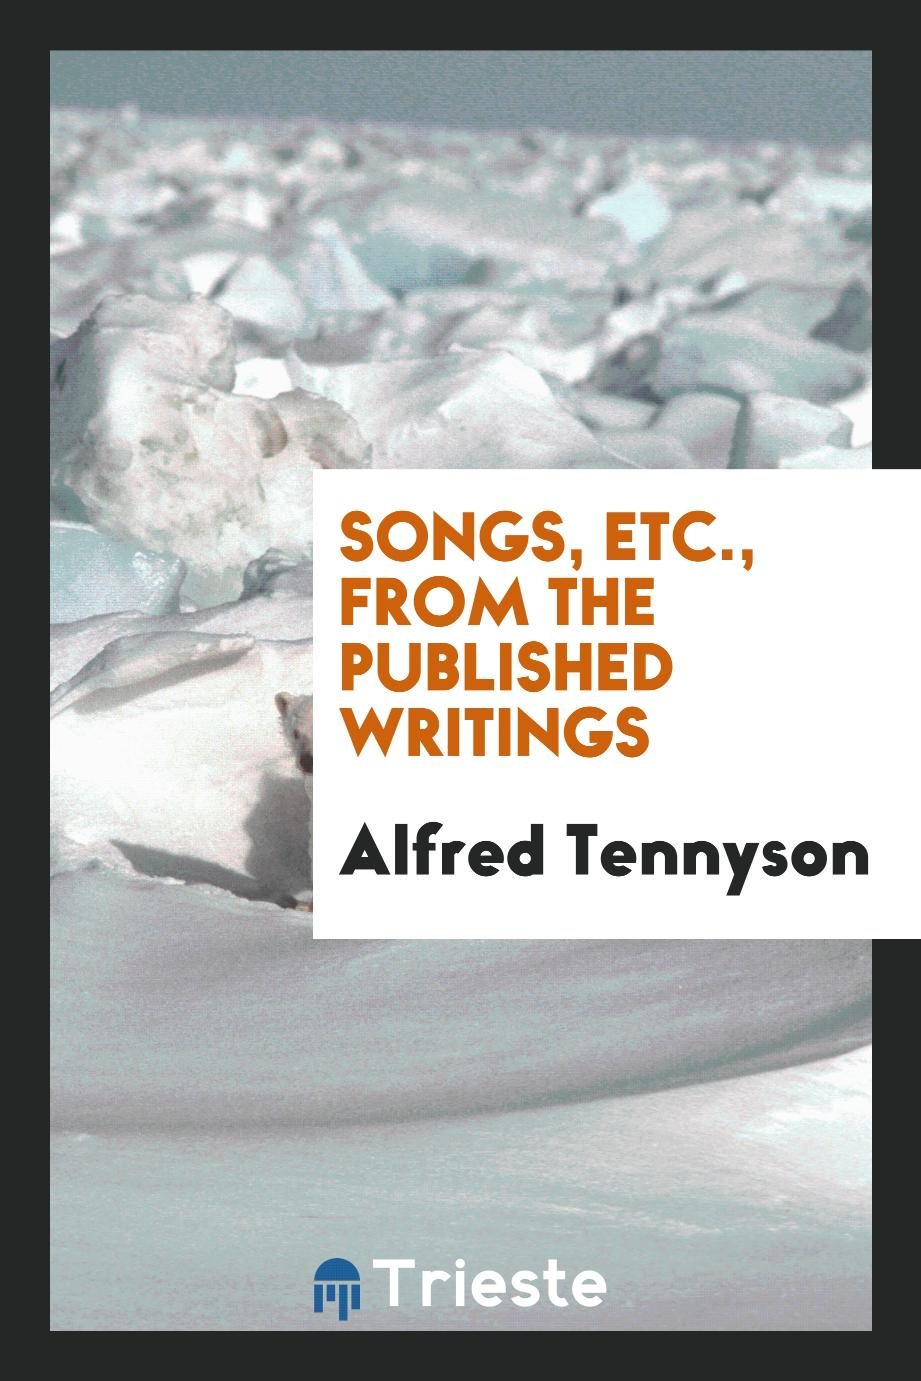 Songs, Etc., from the Published Writings